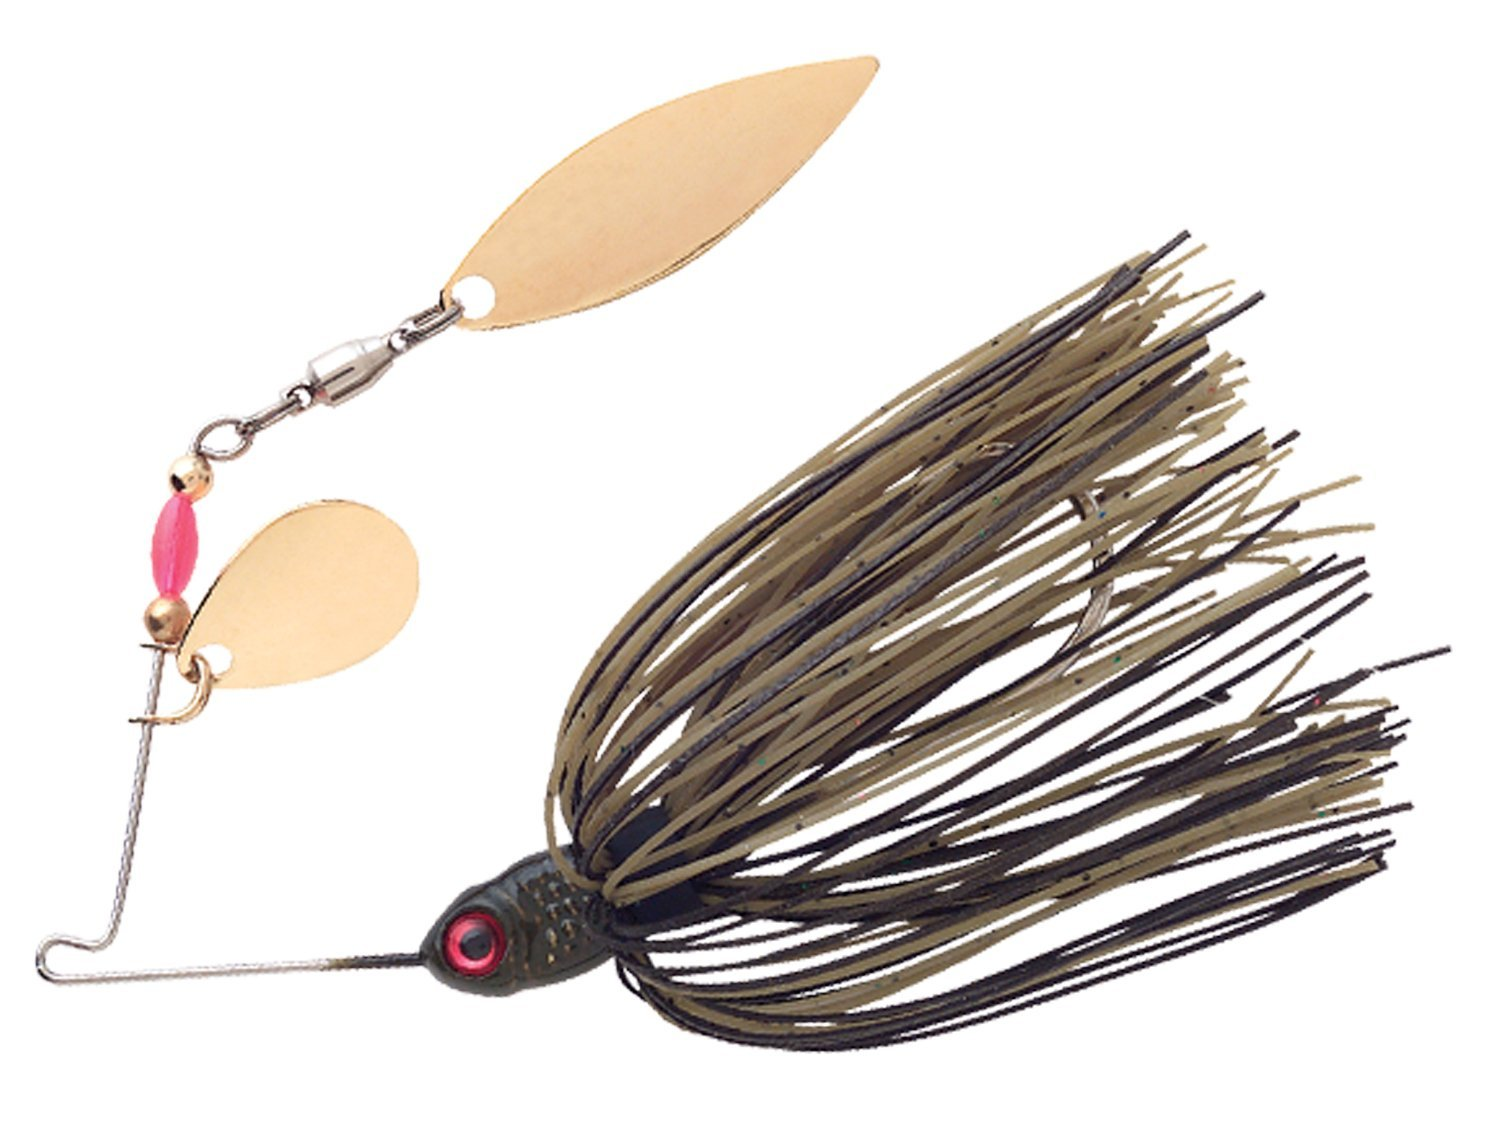 How to use a spinnerbait lure Best lures for pond fishing